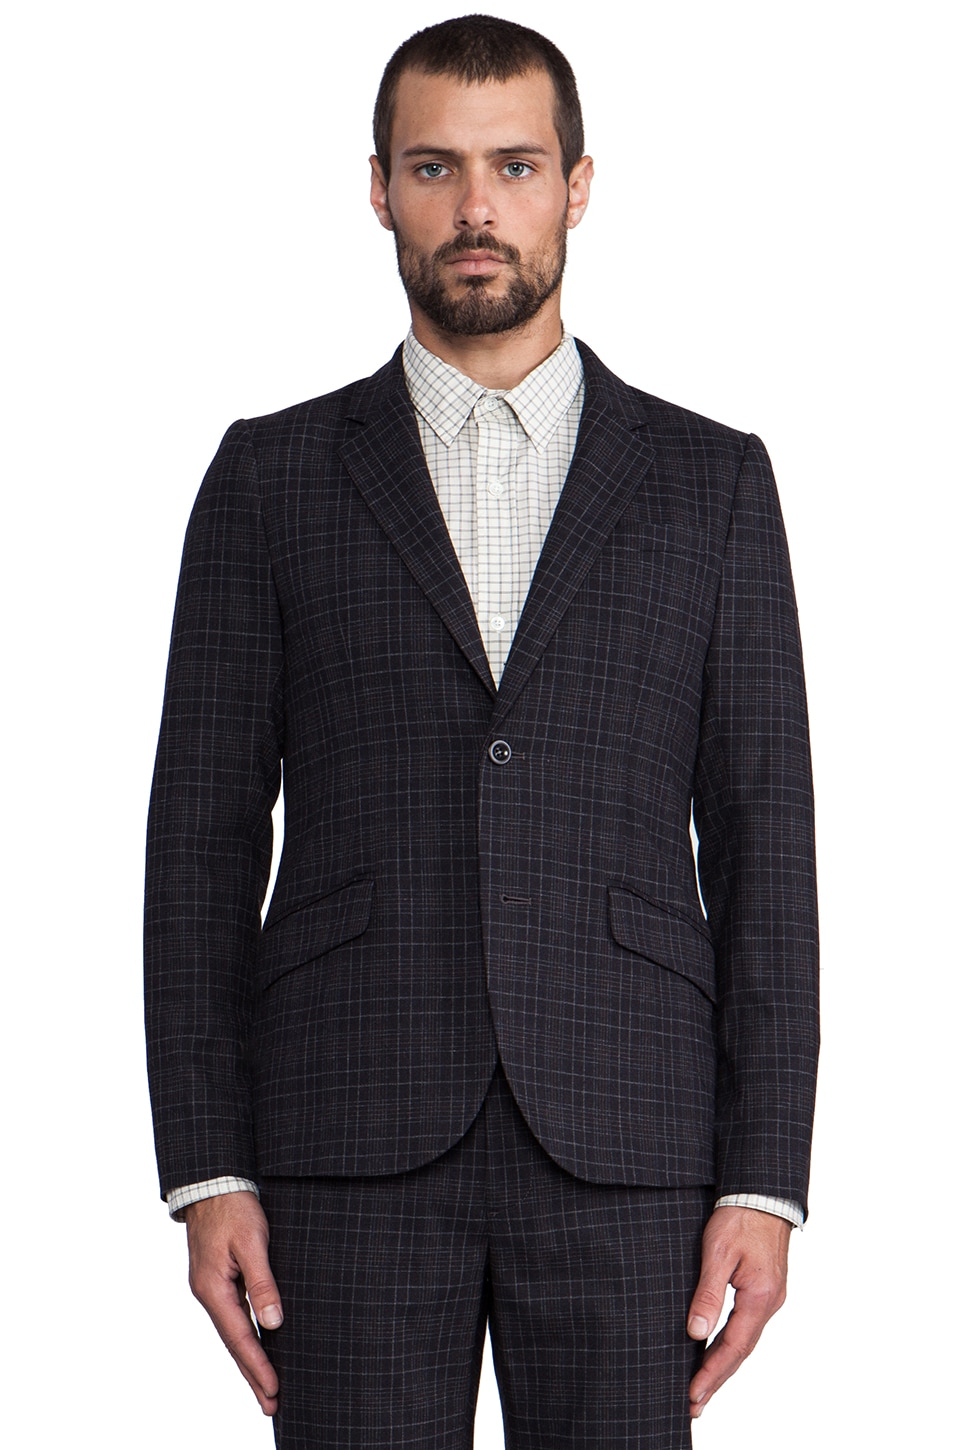 Steven Alan Fenton Suit Jacket in Chagln Plaid